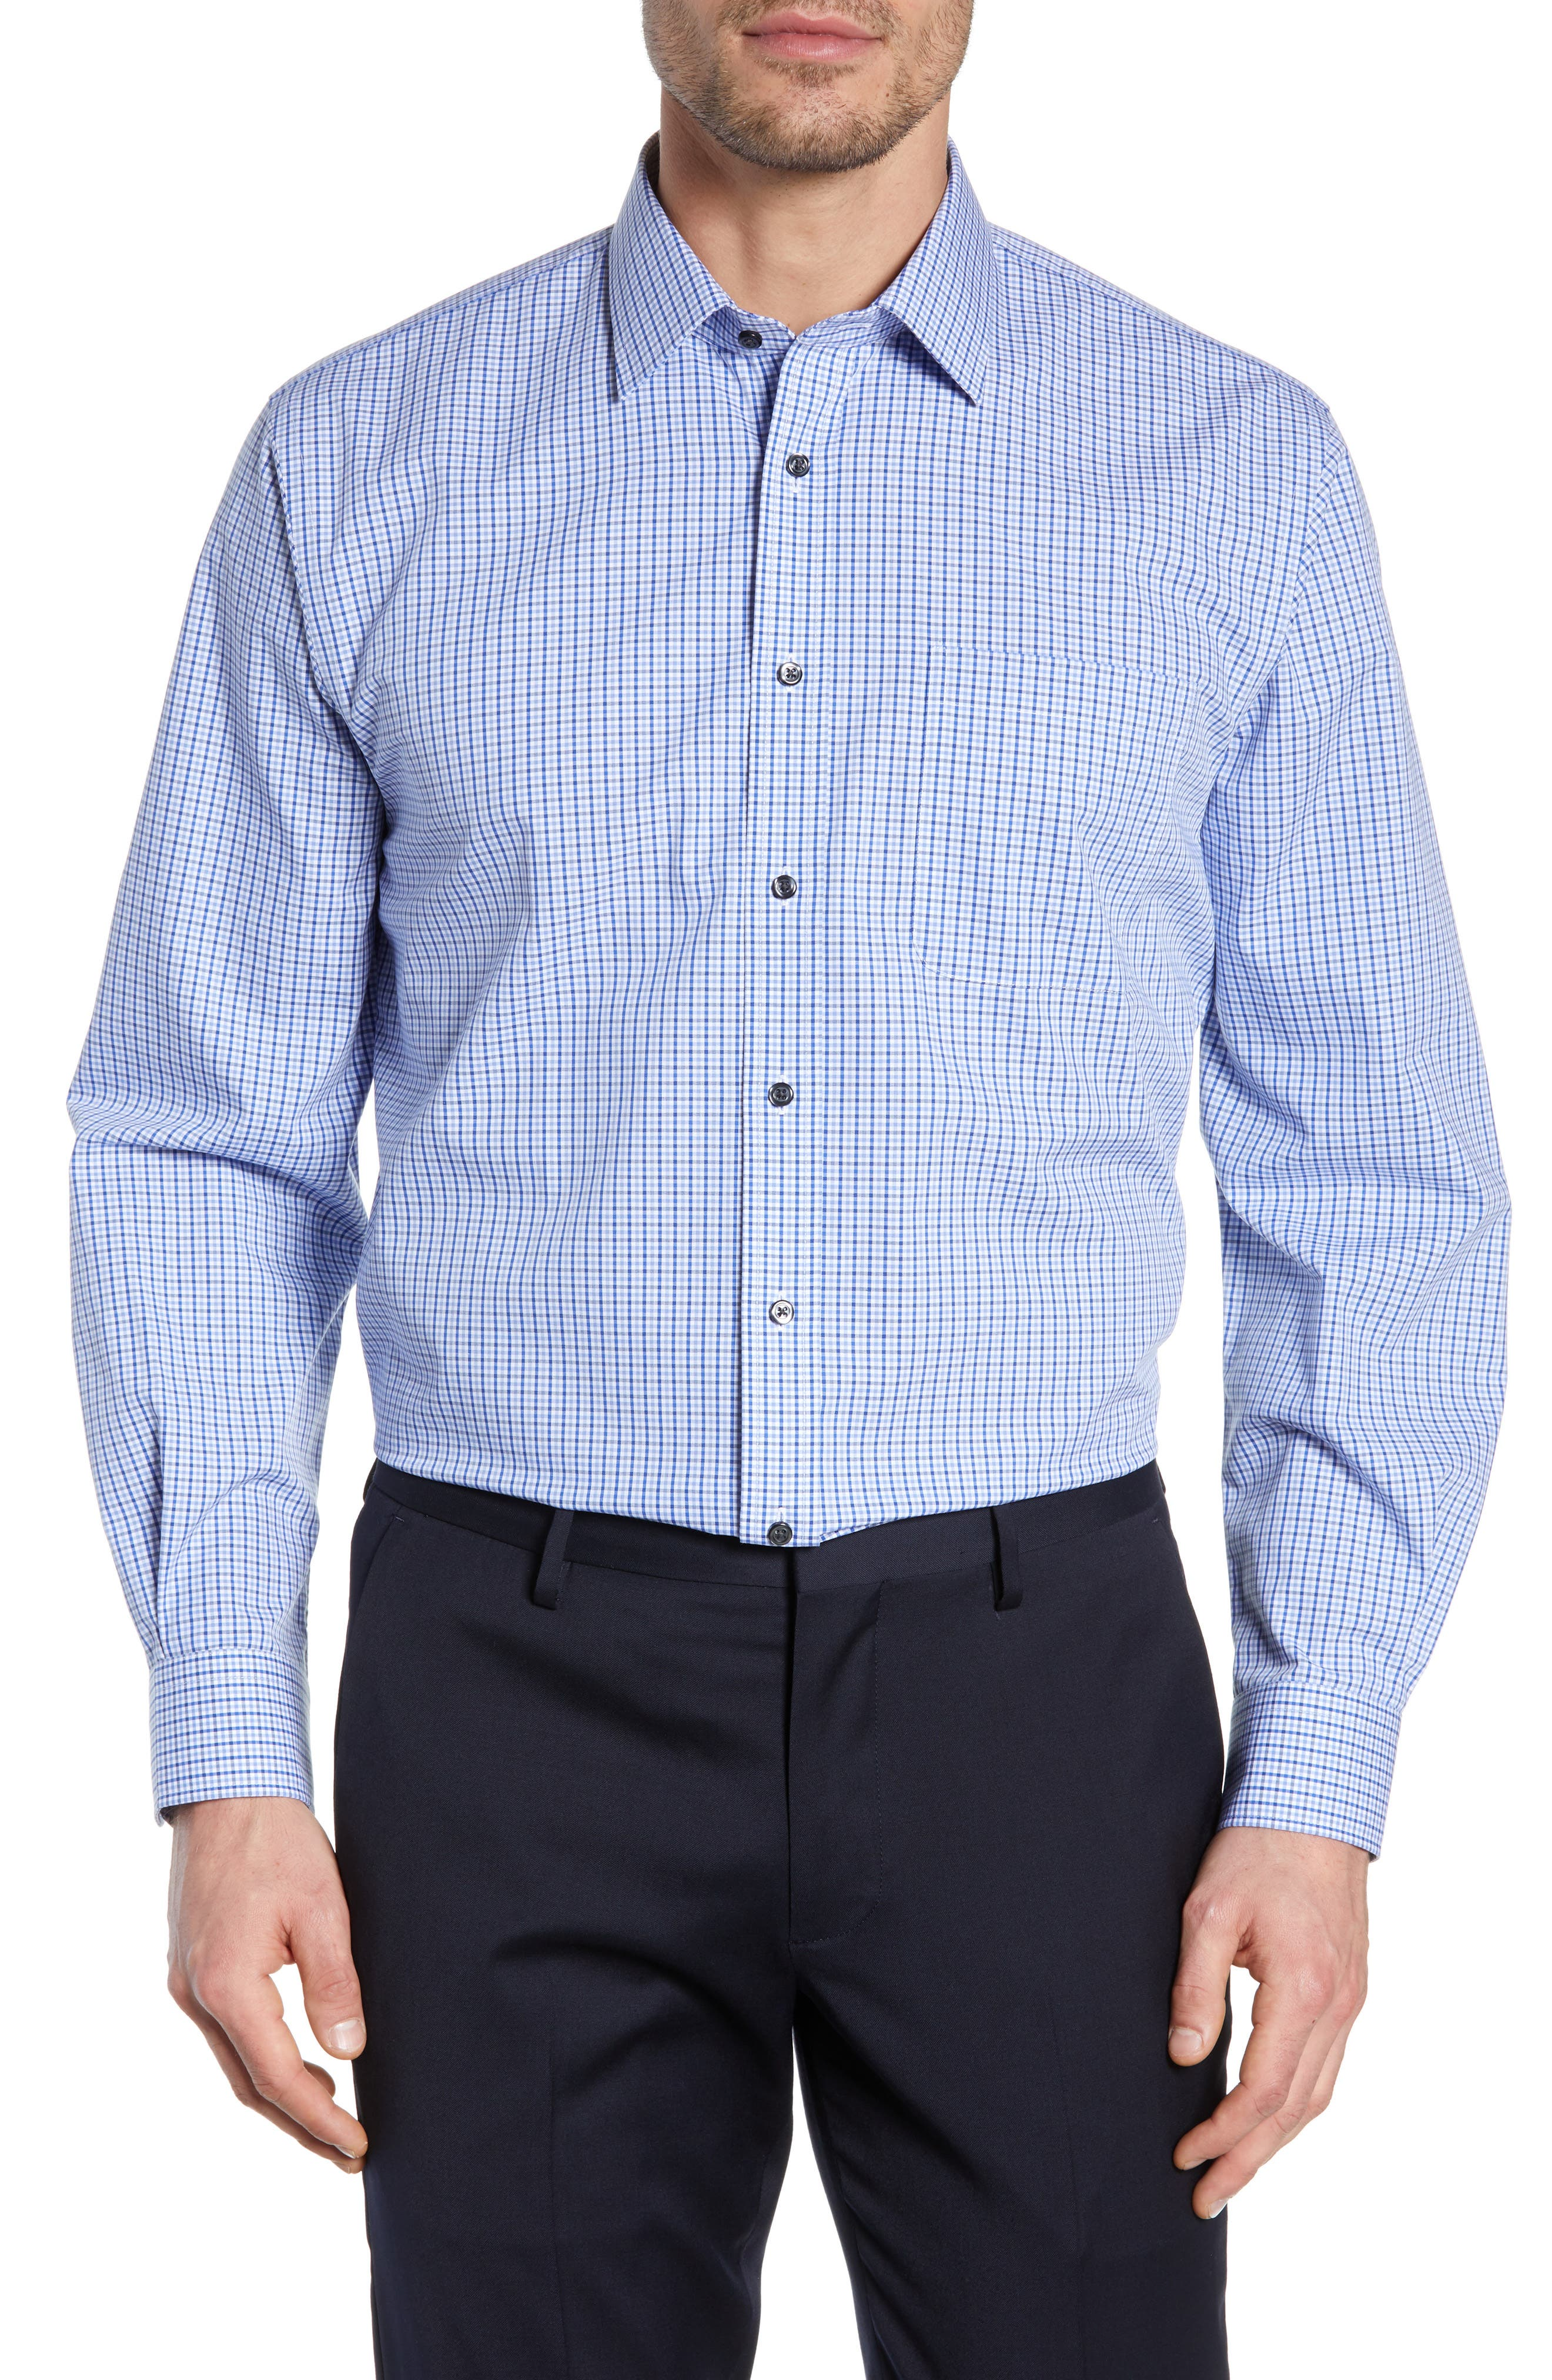 NORDSTROM MEN'S SHOP Traditional Fit Non-Iron Check Dress Shirt, Main, color, BLUE MARINE